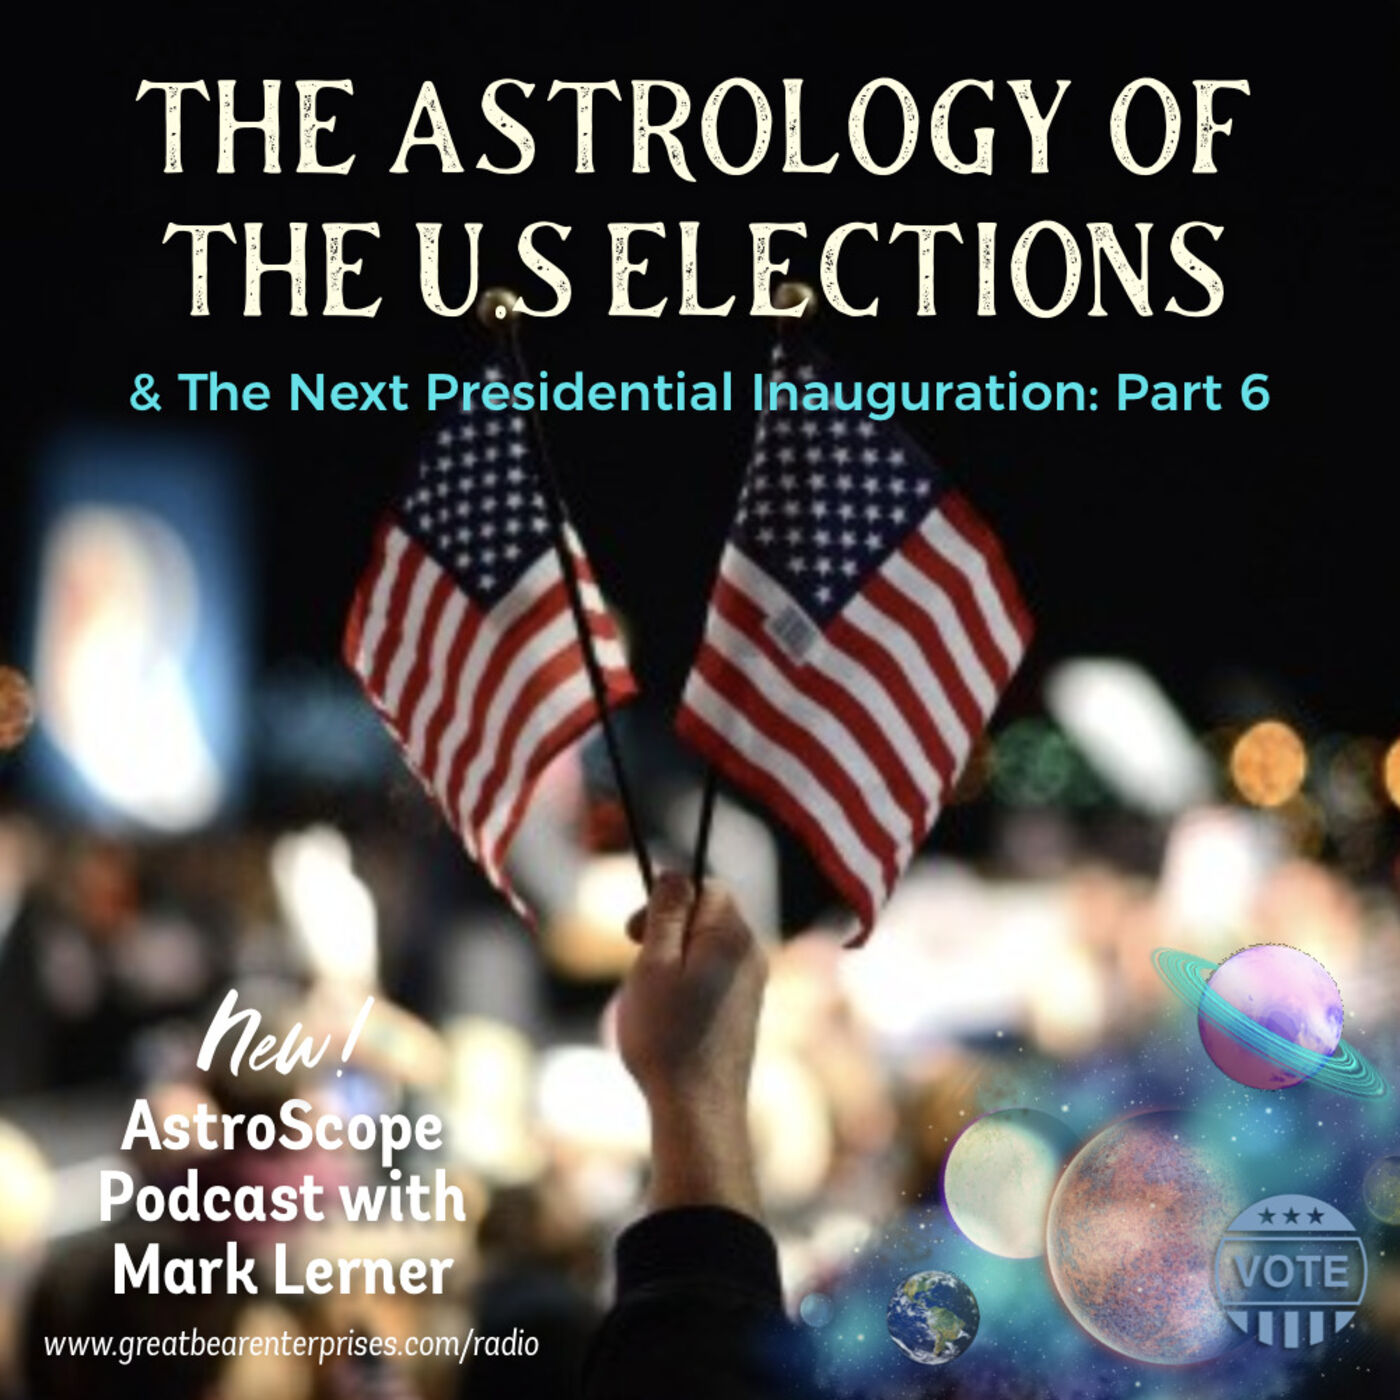 The Astrology of the 2020 U.S. Elections & the Next Presidential Inauguration: Part 6